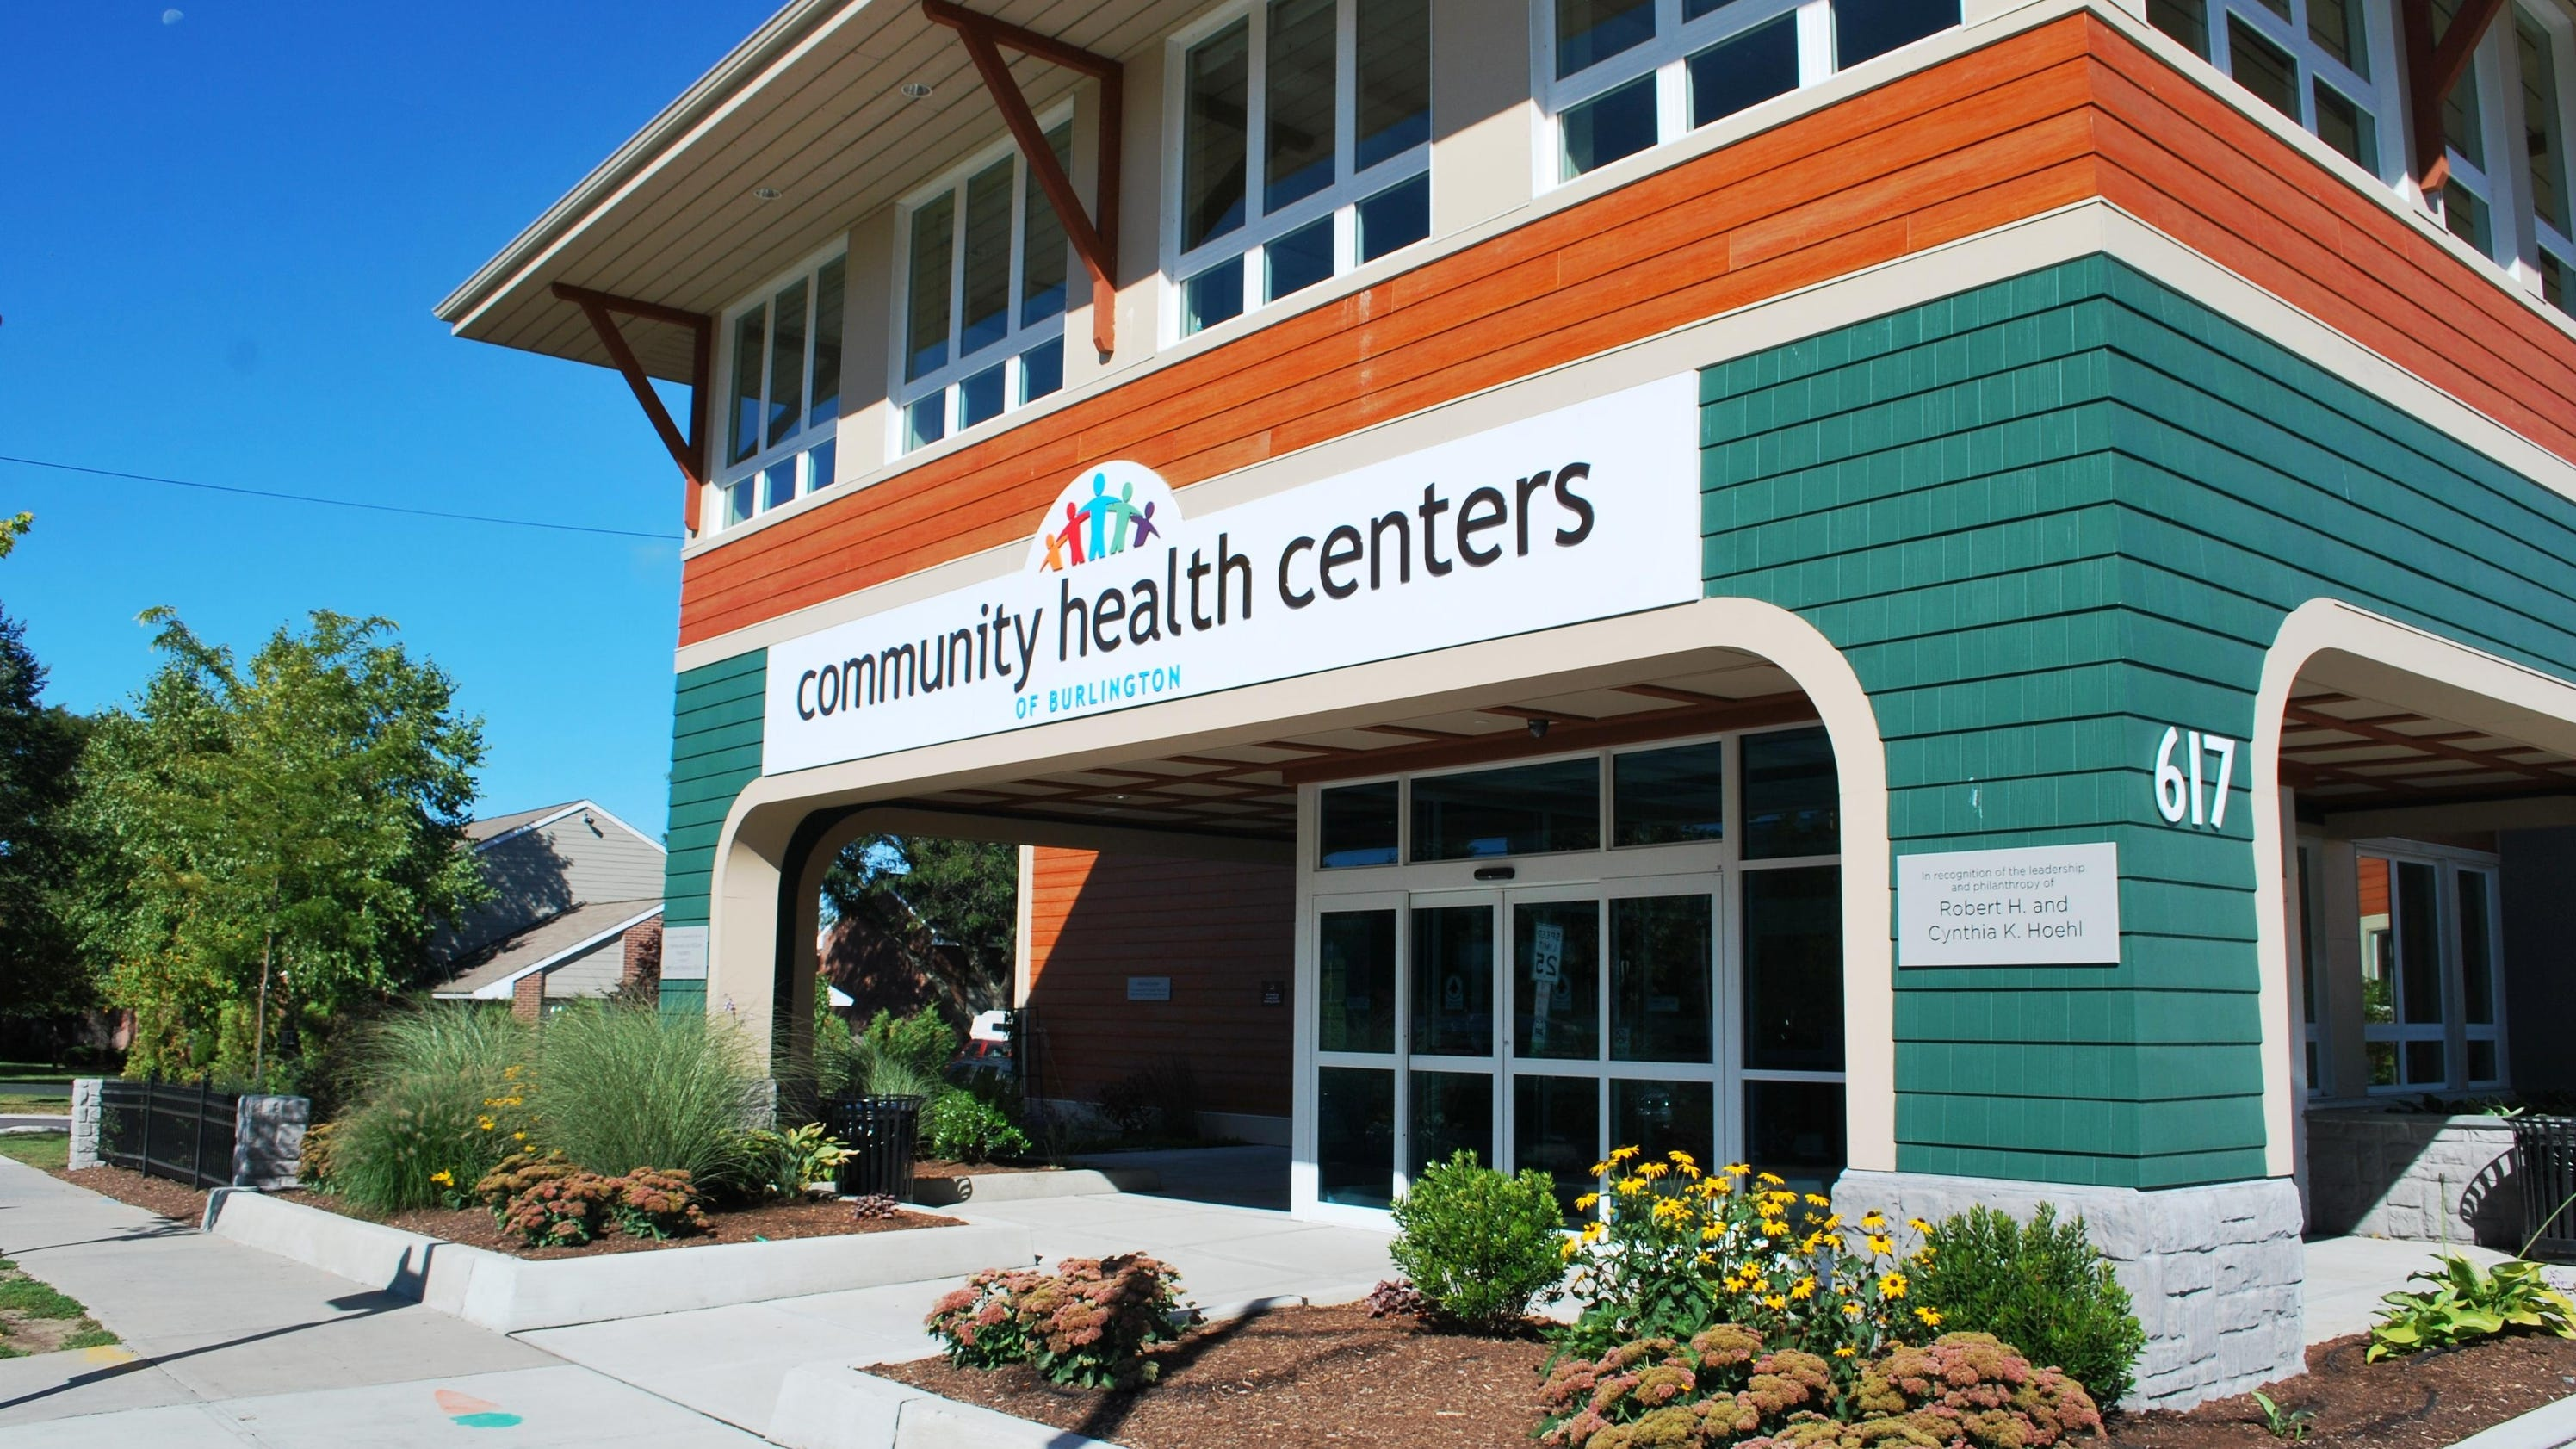 Opinion: Expand community health centers